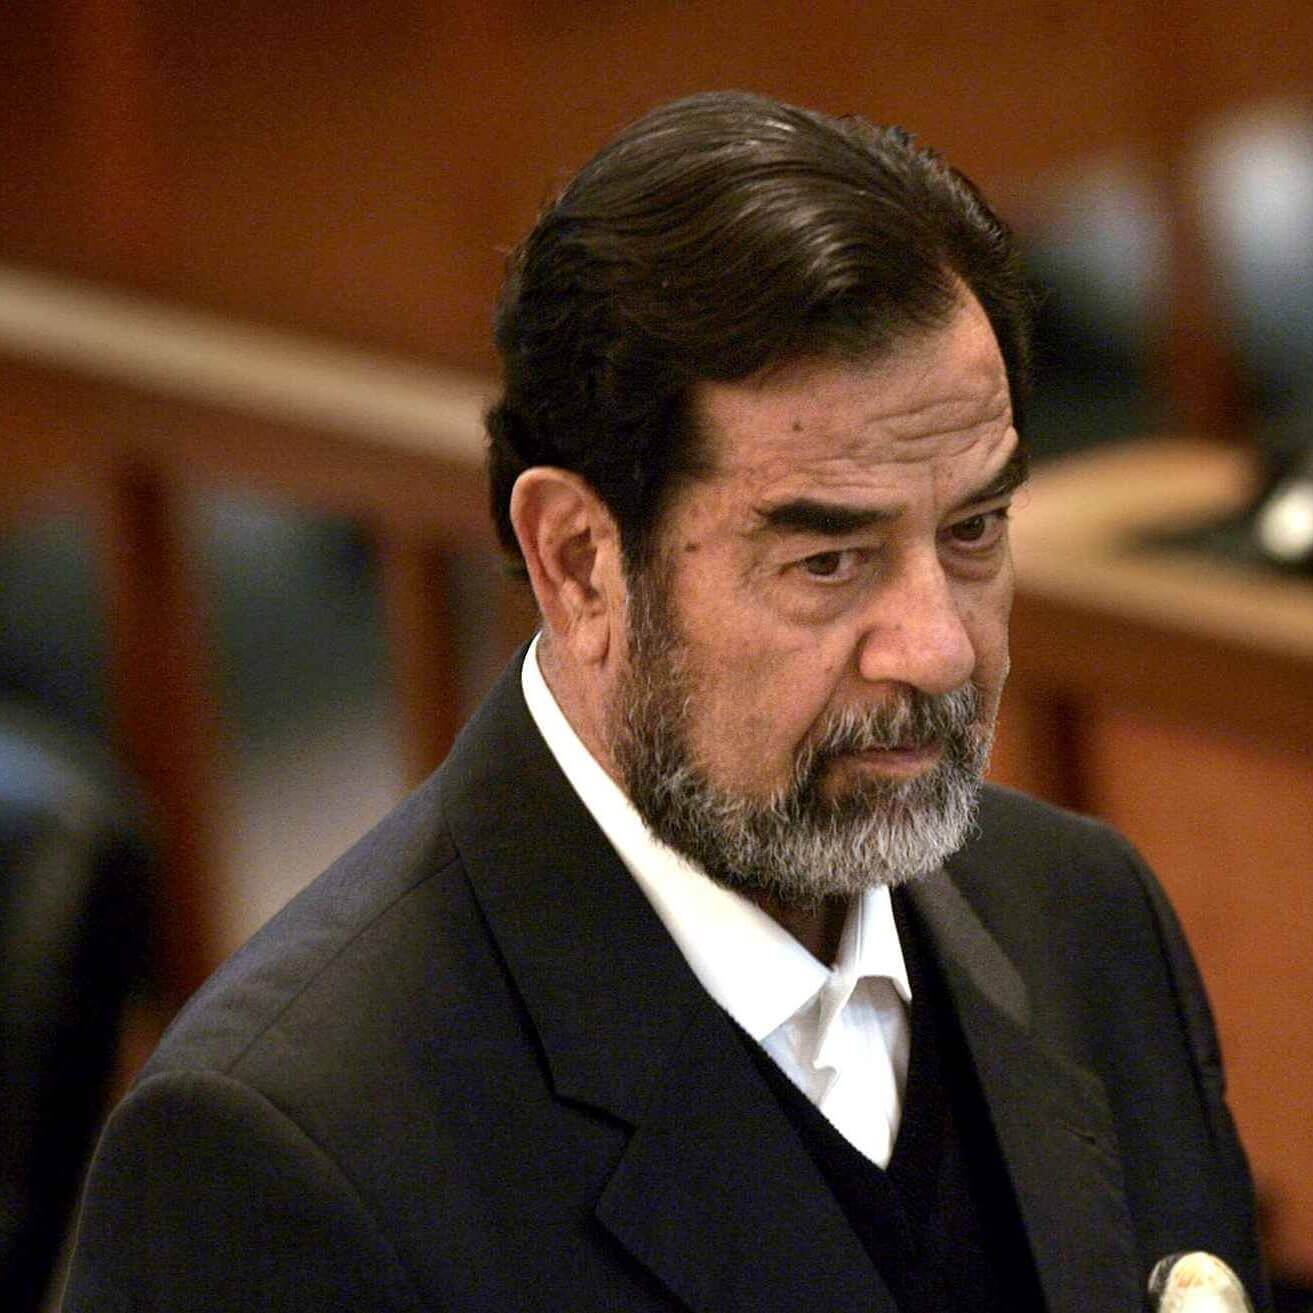 Saddam Hussein Biography: President of Iraq and the Butcher of Baghdad